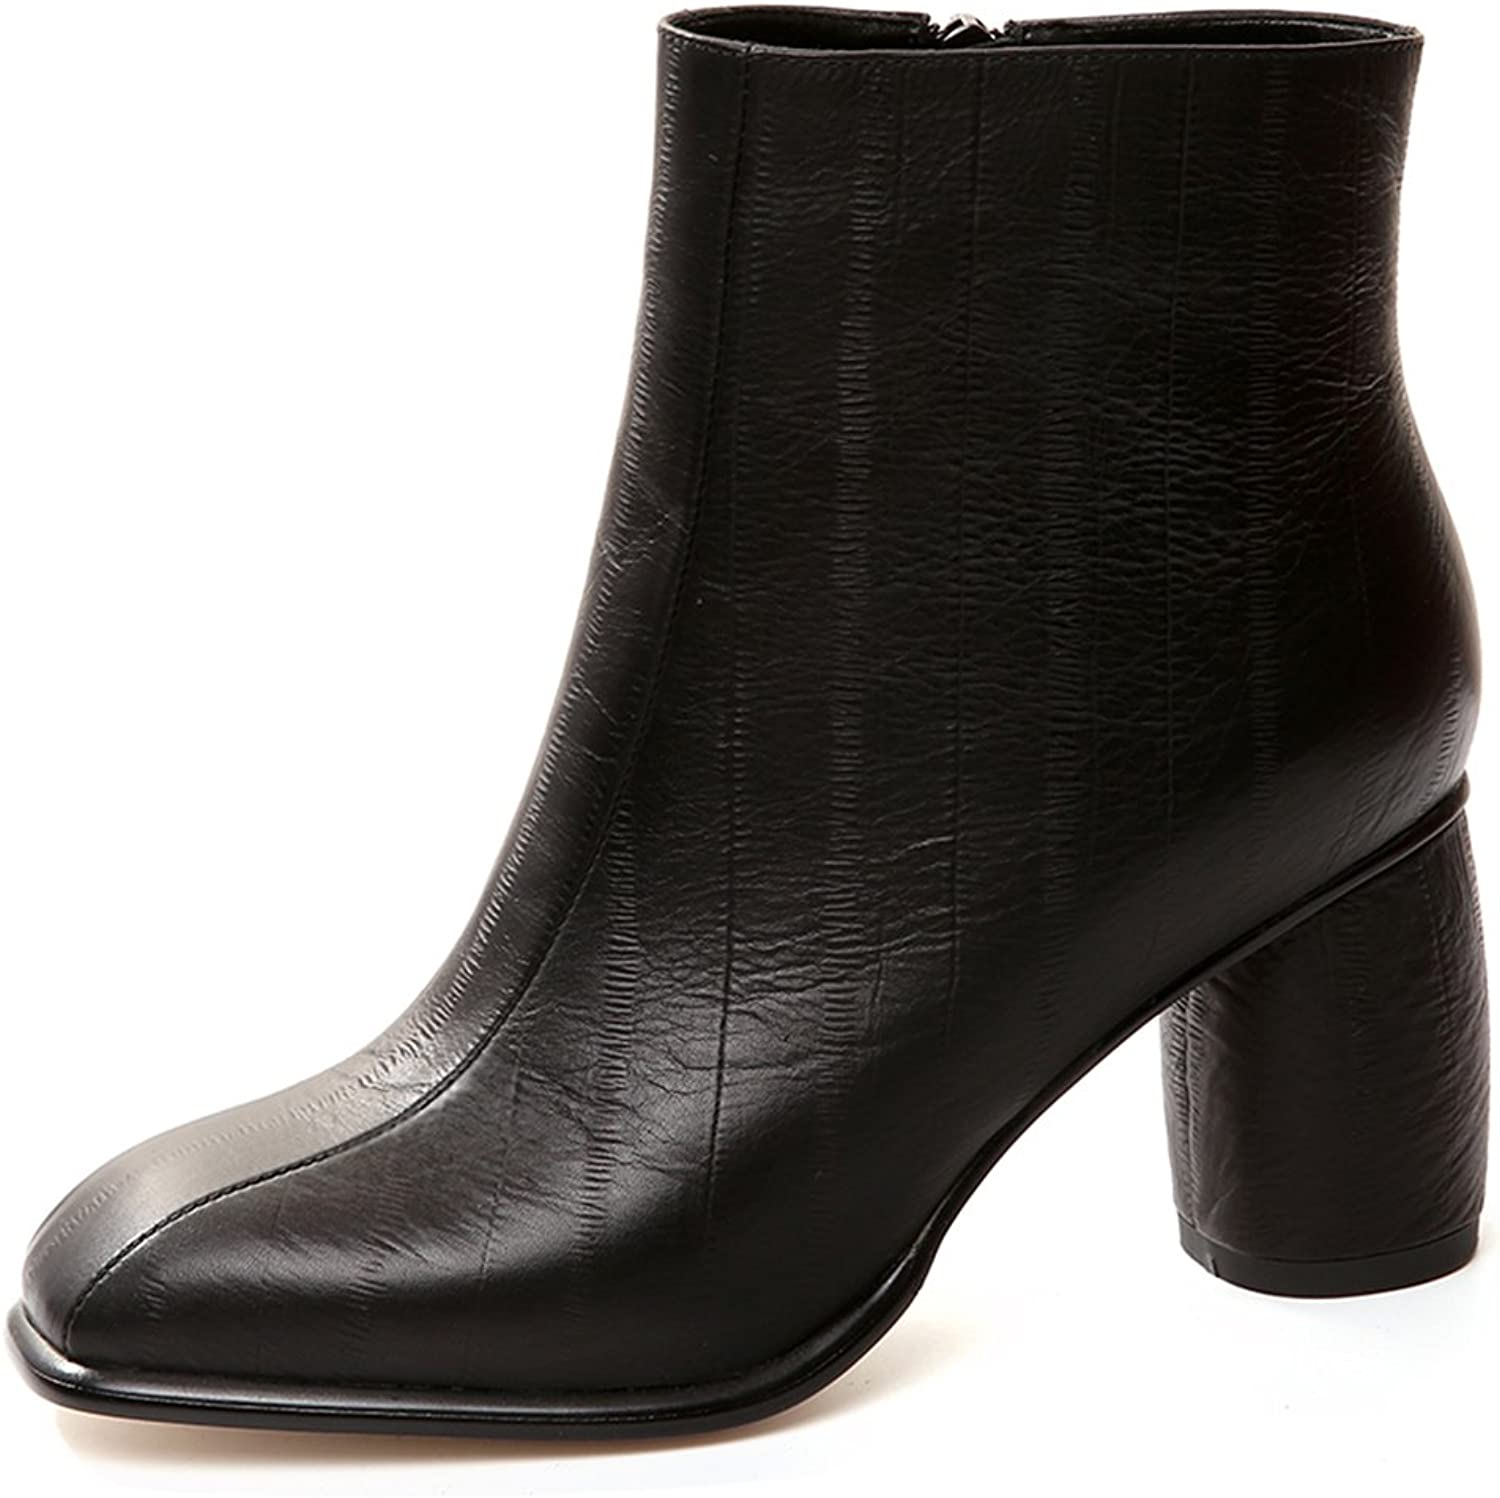 A-BUYBEA Women's Square Toe Chunky Heel Leather Ankle Boots